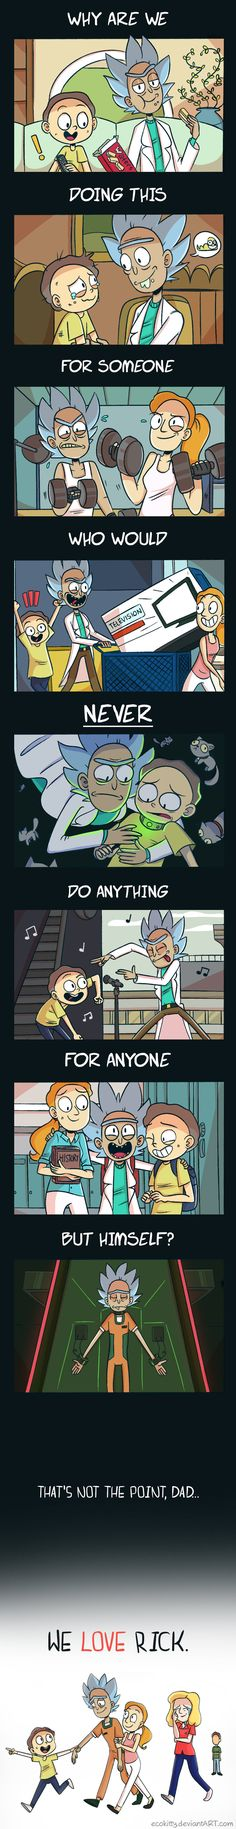 Depressing Rick and Morty Sad Quotes. 43 Depressing Rick and Morty Sad Quotes. We Love You Rick Rick Rick And Morty Quotes, Rick And Morty Poster, Rick And Morty Comic, Ricky Y Morty, Geek Culture, Do Anything, Tmnt, Steven Universe, Adventure Time